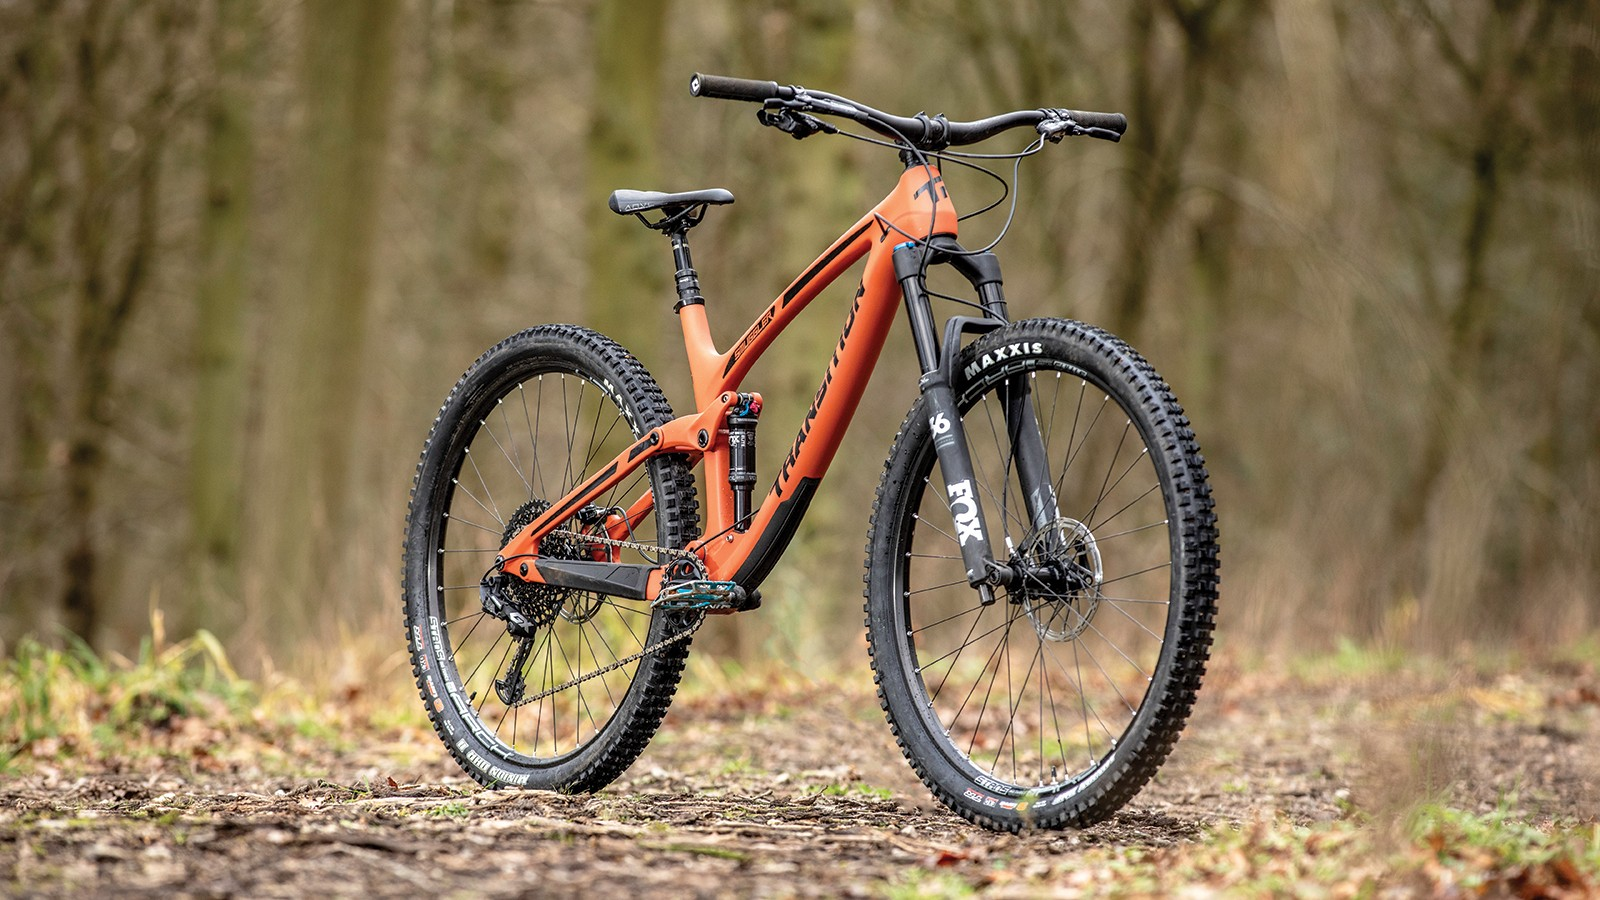 Transition Smuggler GX full suspension mountain bike